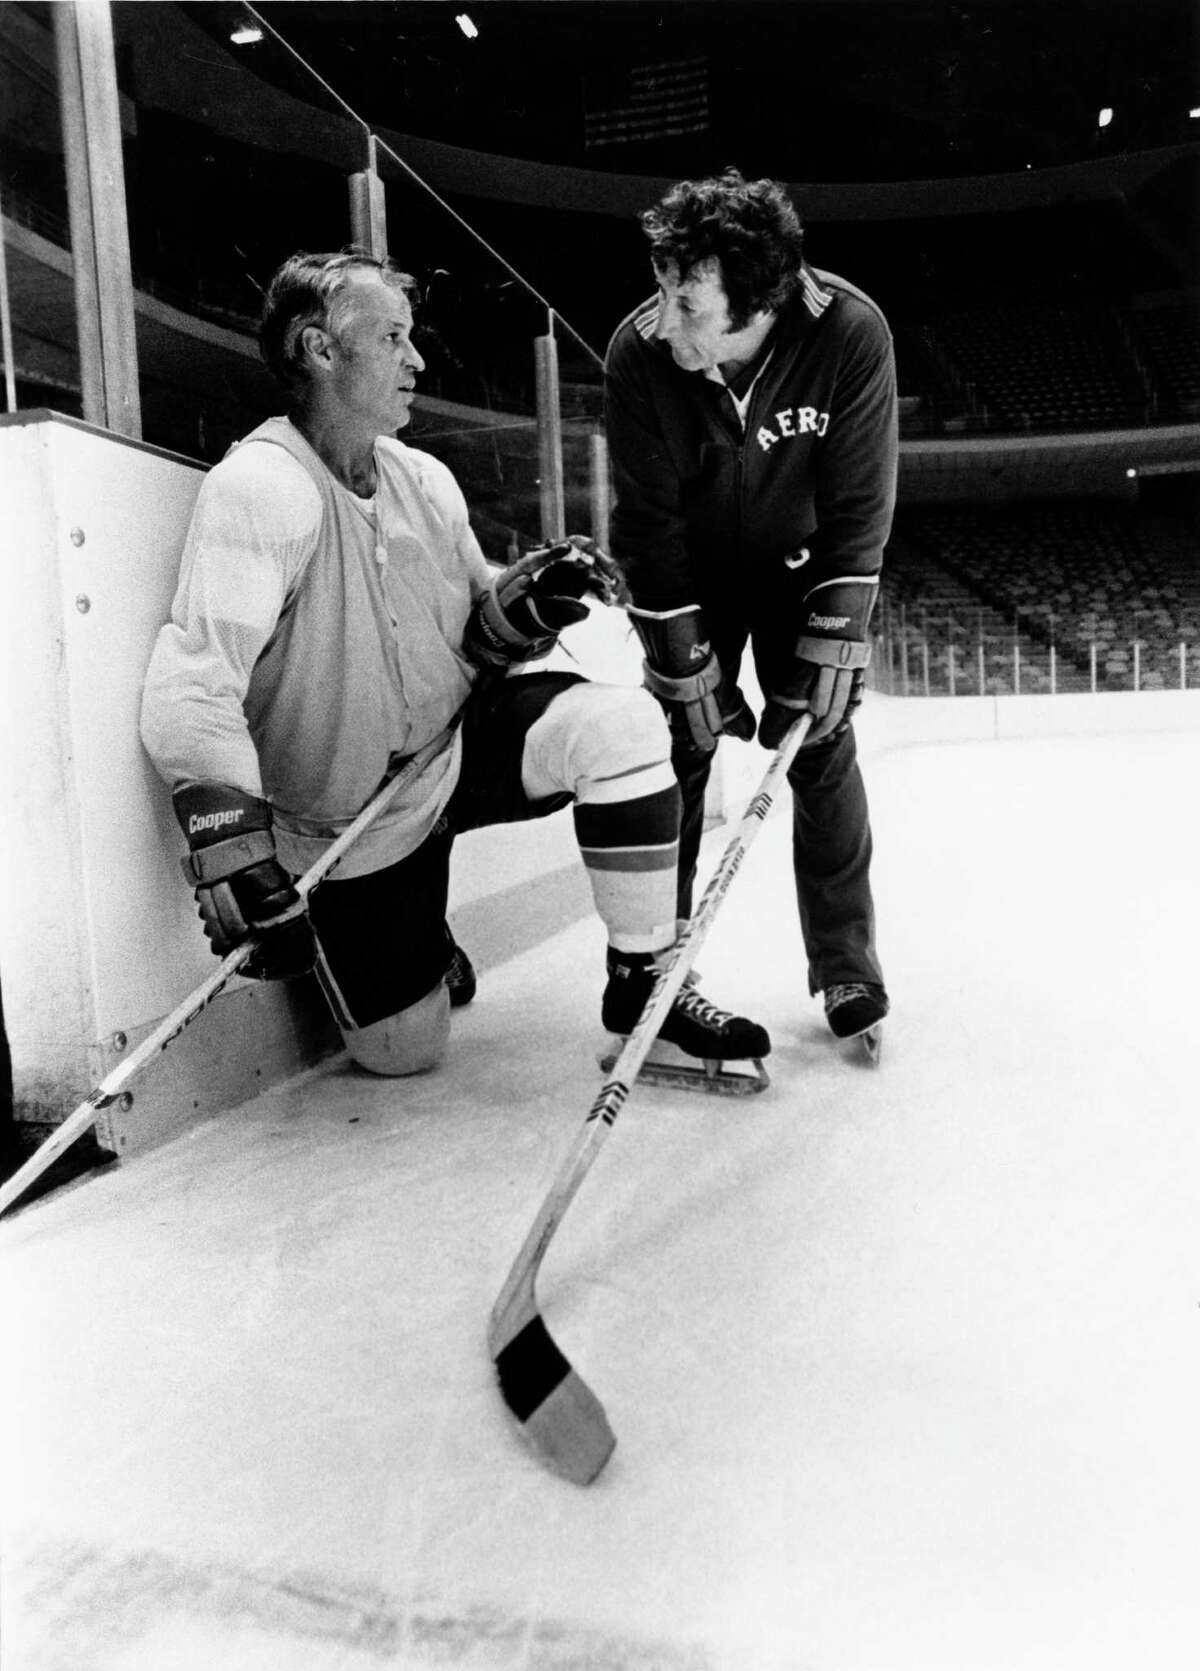 Bill Dineen, right, coached Gordie Howe and the Houston Aeros for six seasons, winning two Avco Cups and twice earning WHA coach-of-the-year honors.